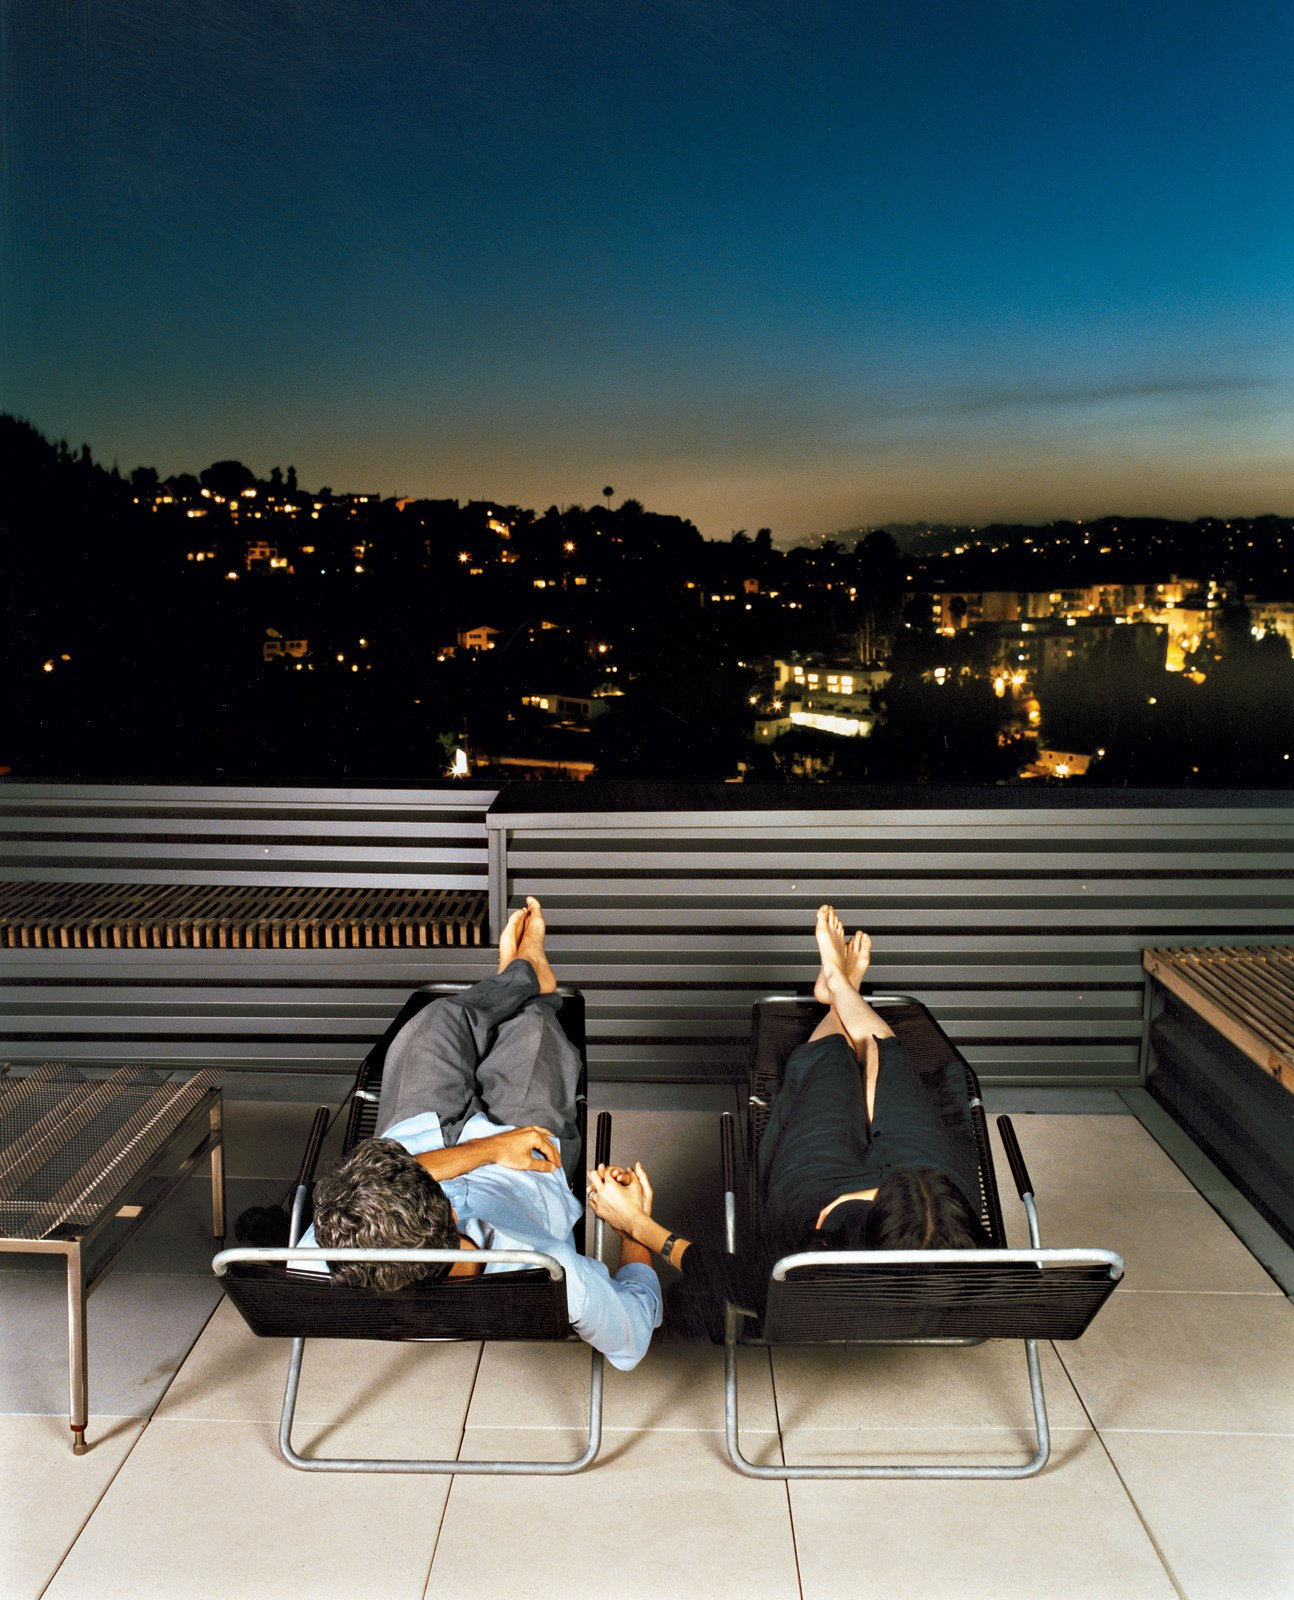 Joe Day and Nina Hachigian relax on their terrace overlooking the hills in Silver Lake area of Los Angeles.  Private Rooftop Sanctuaries  by Zachary Edelson